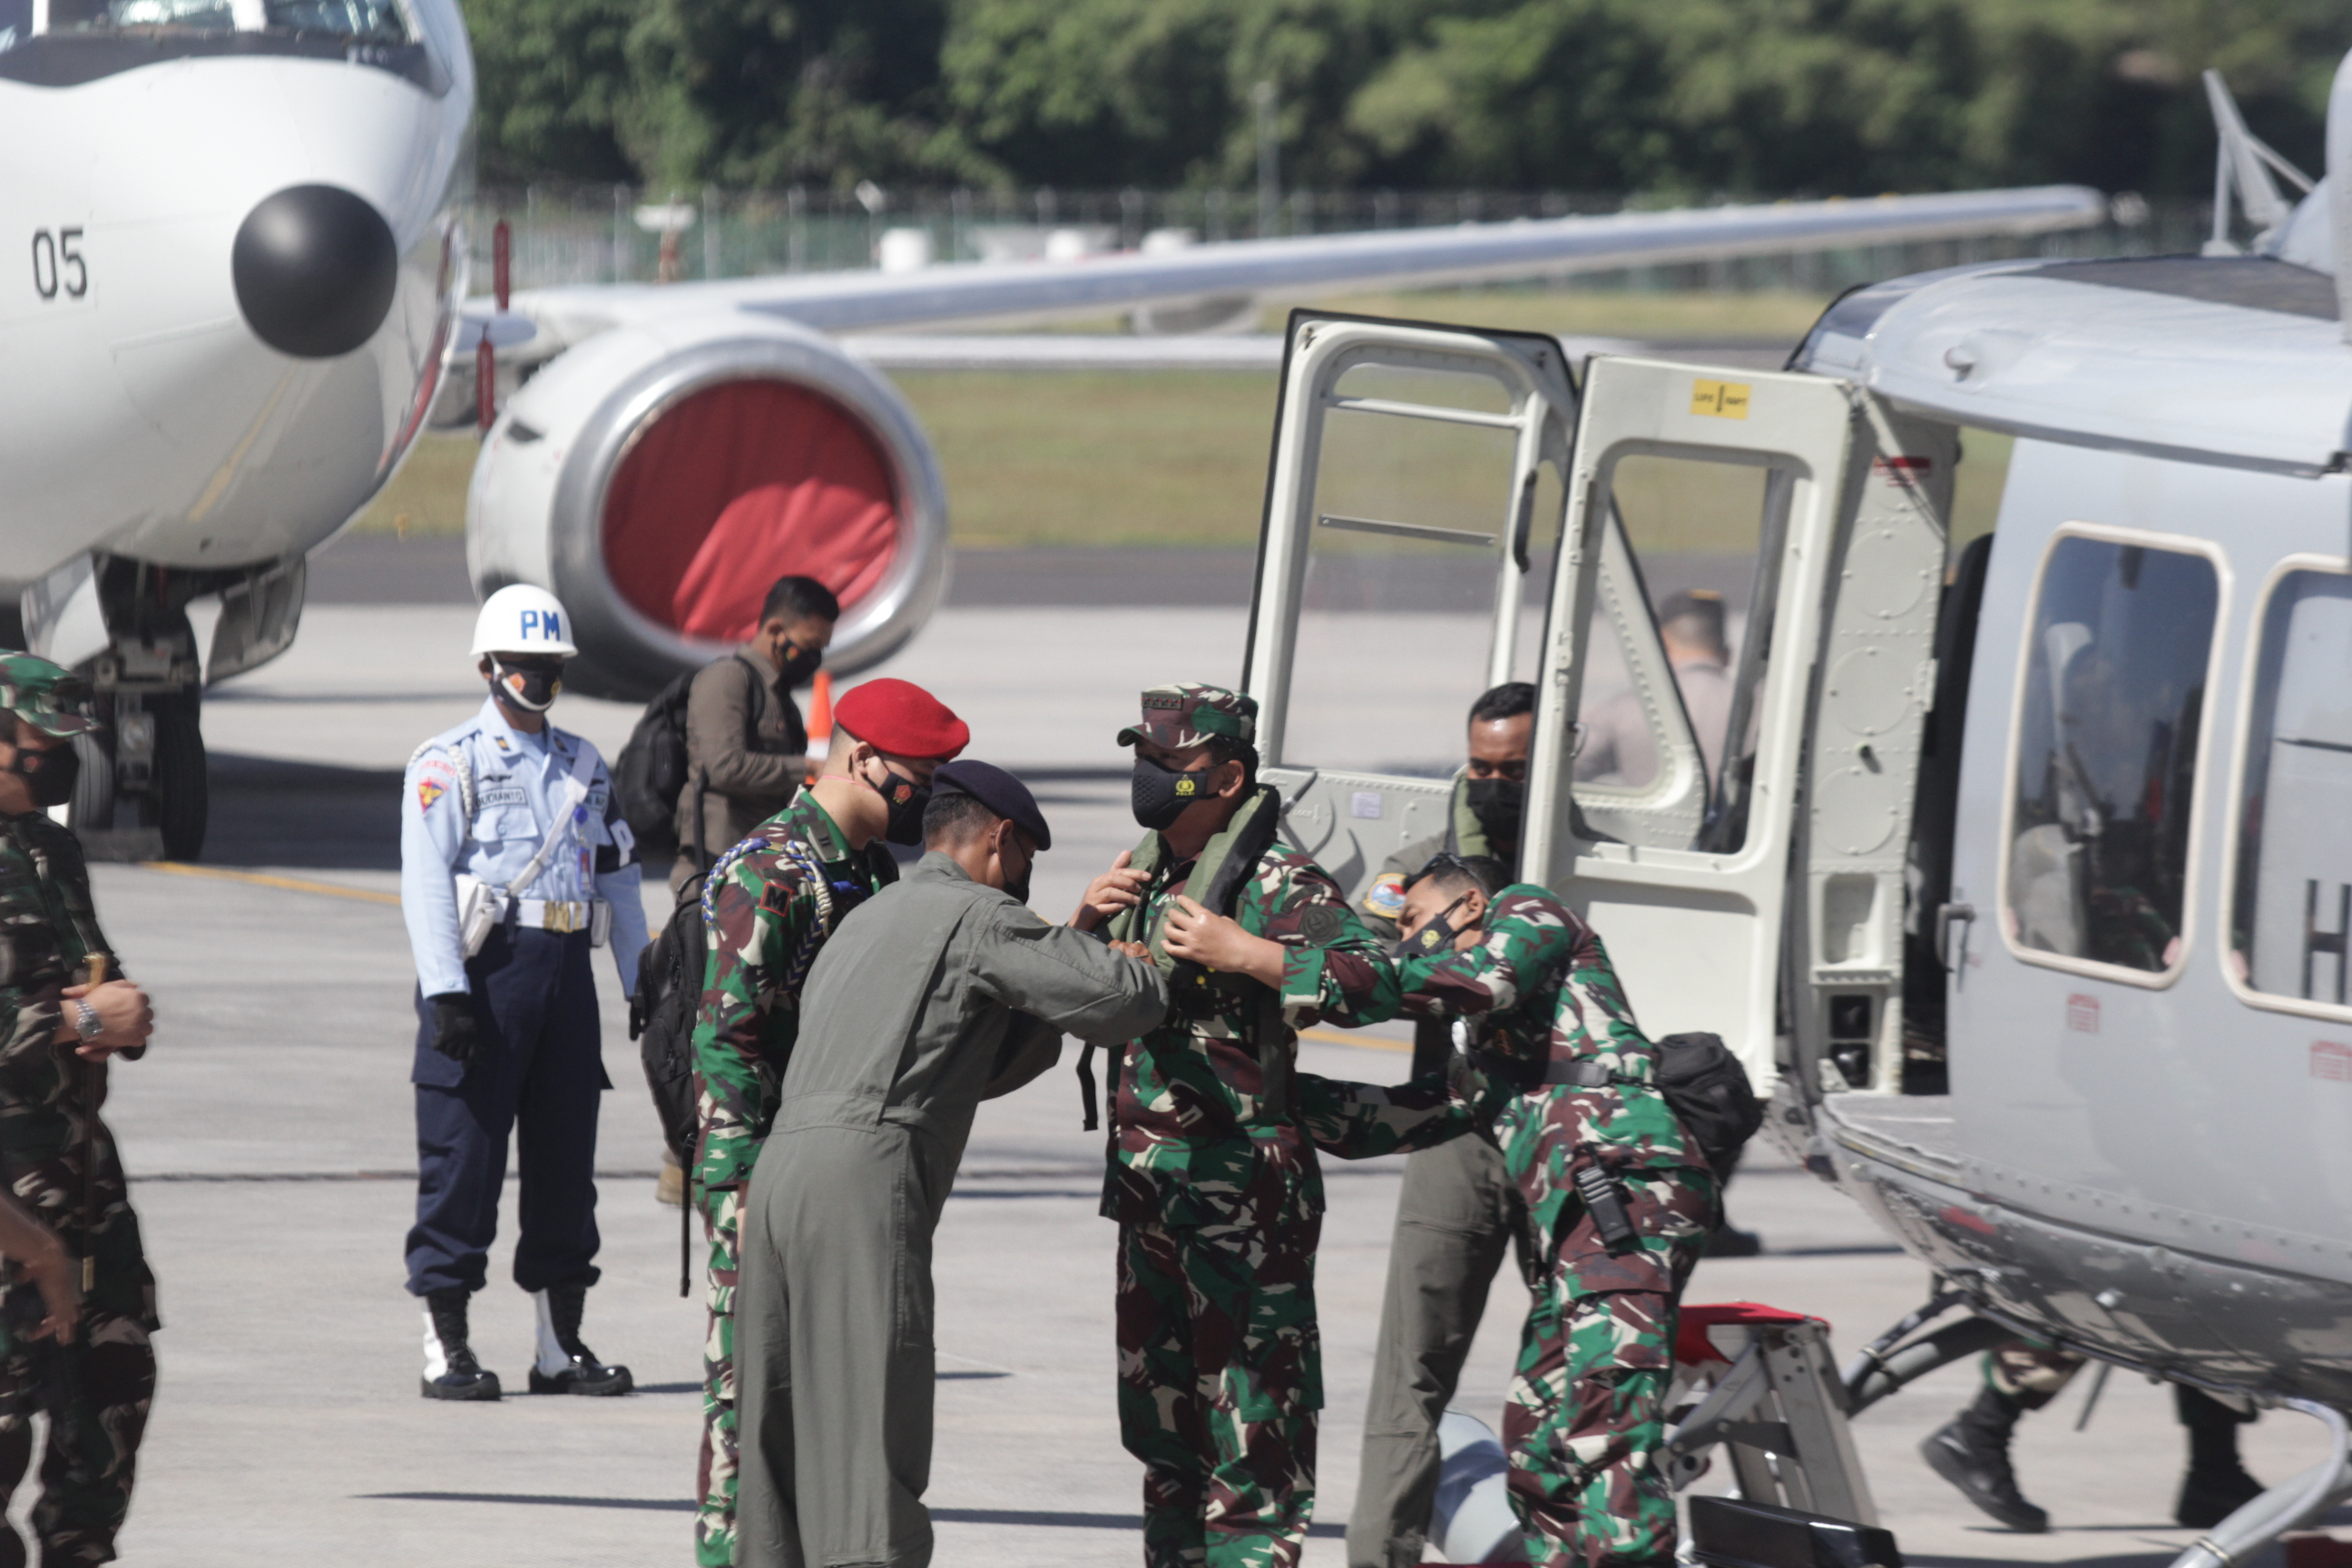 Indonesian soldiers board helicopter en route to rescue mission